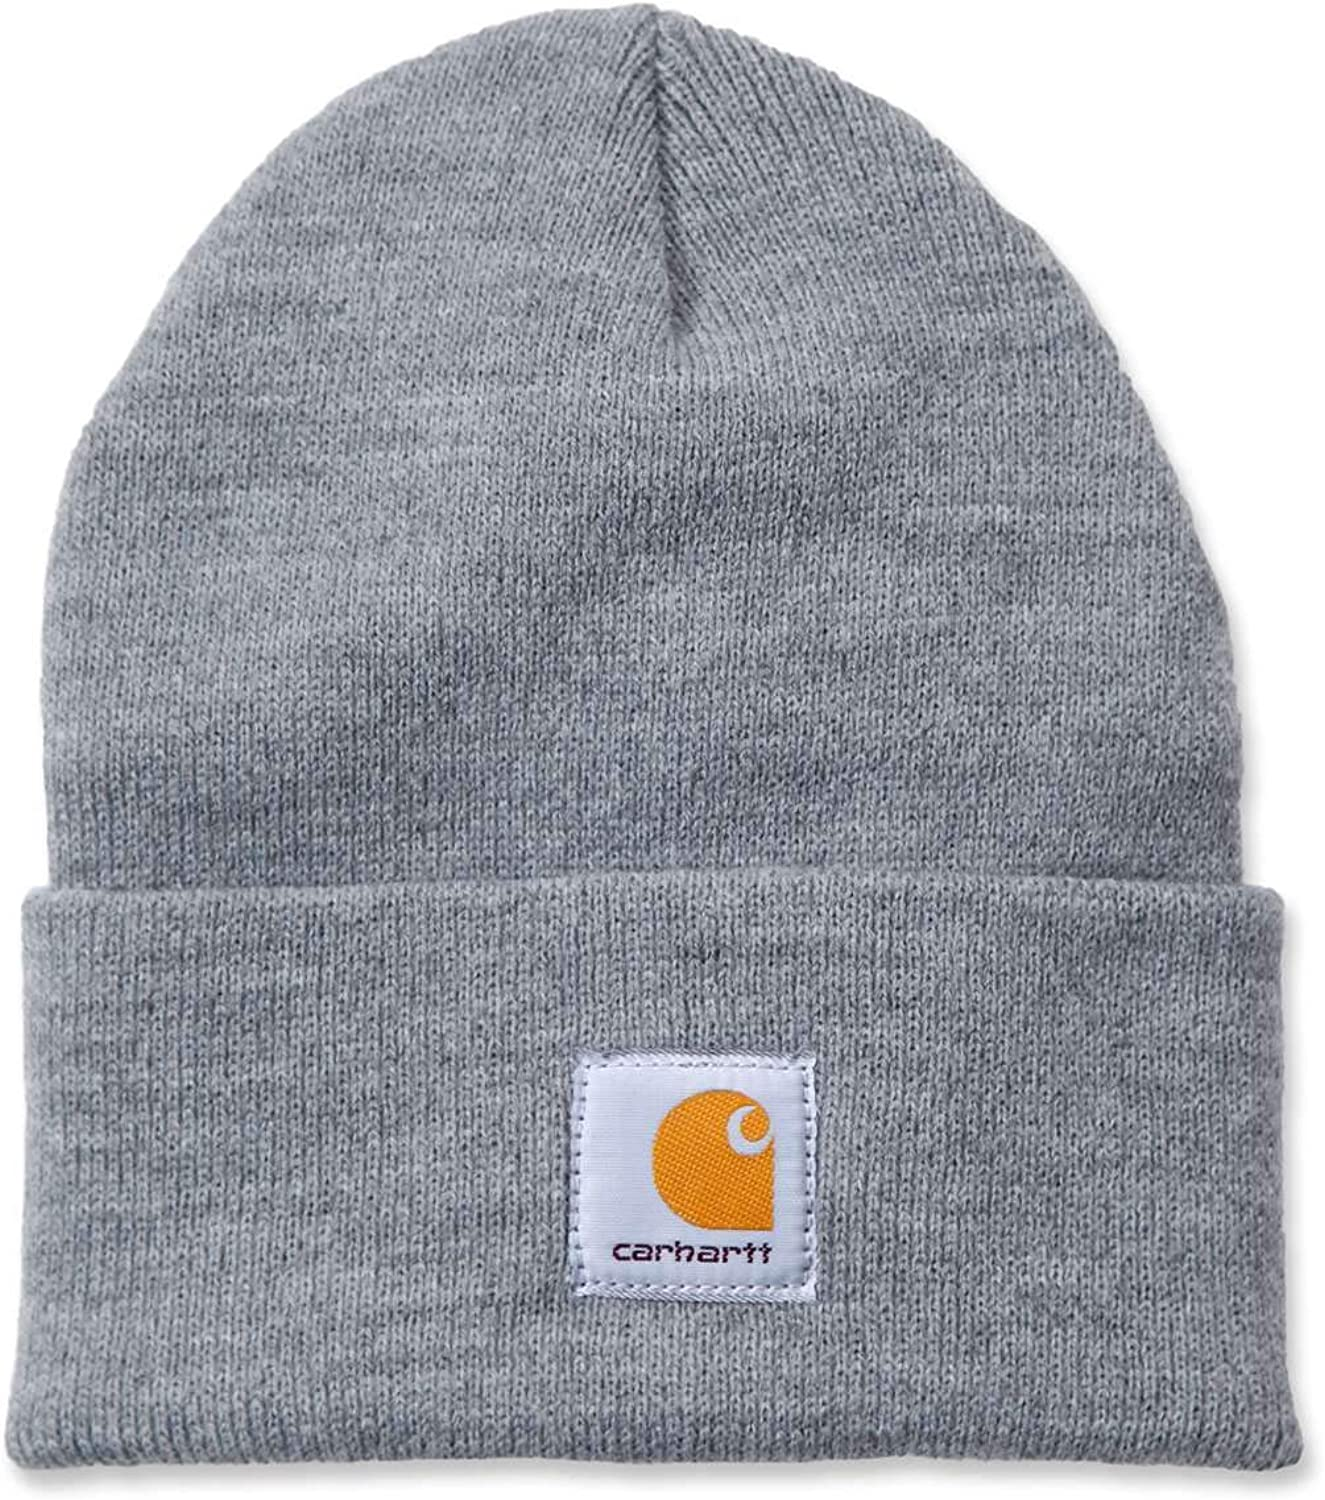 Carhartt Unisex Beanie Acrylic Watch Hat Grau Heather Grey One ...